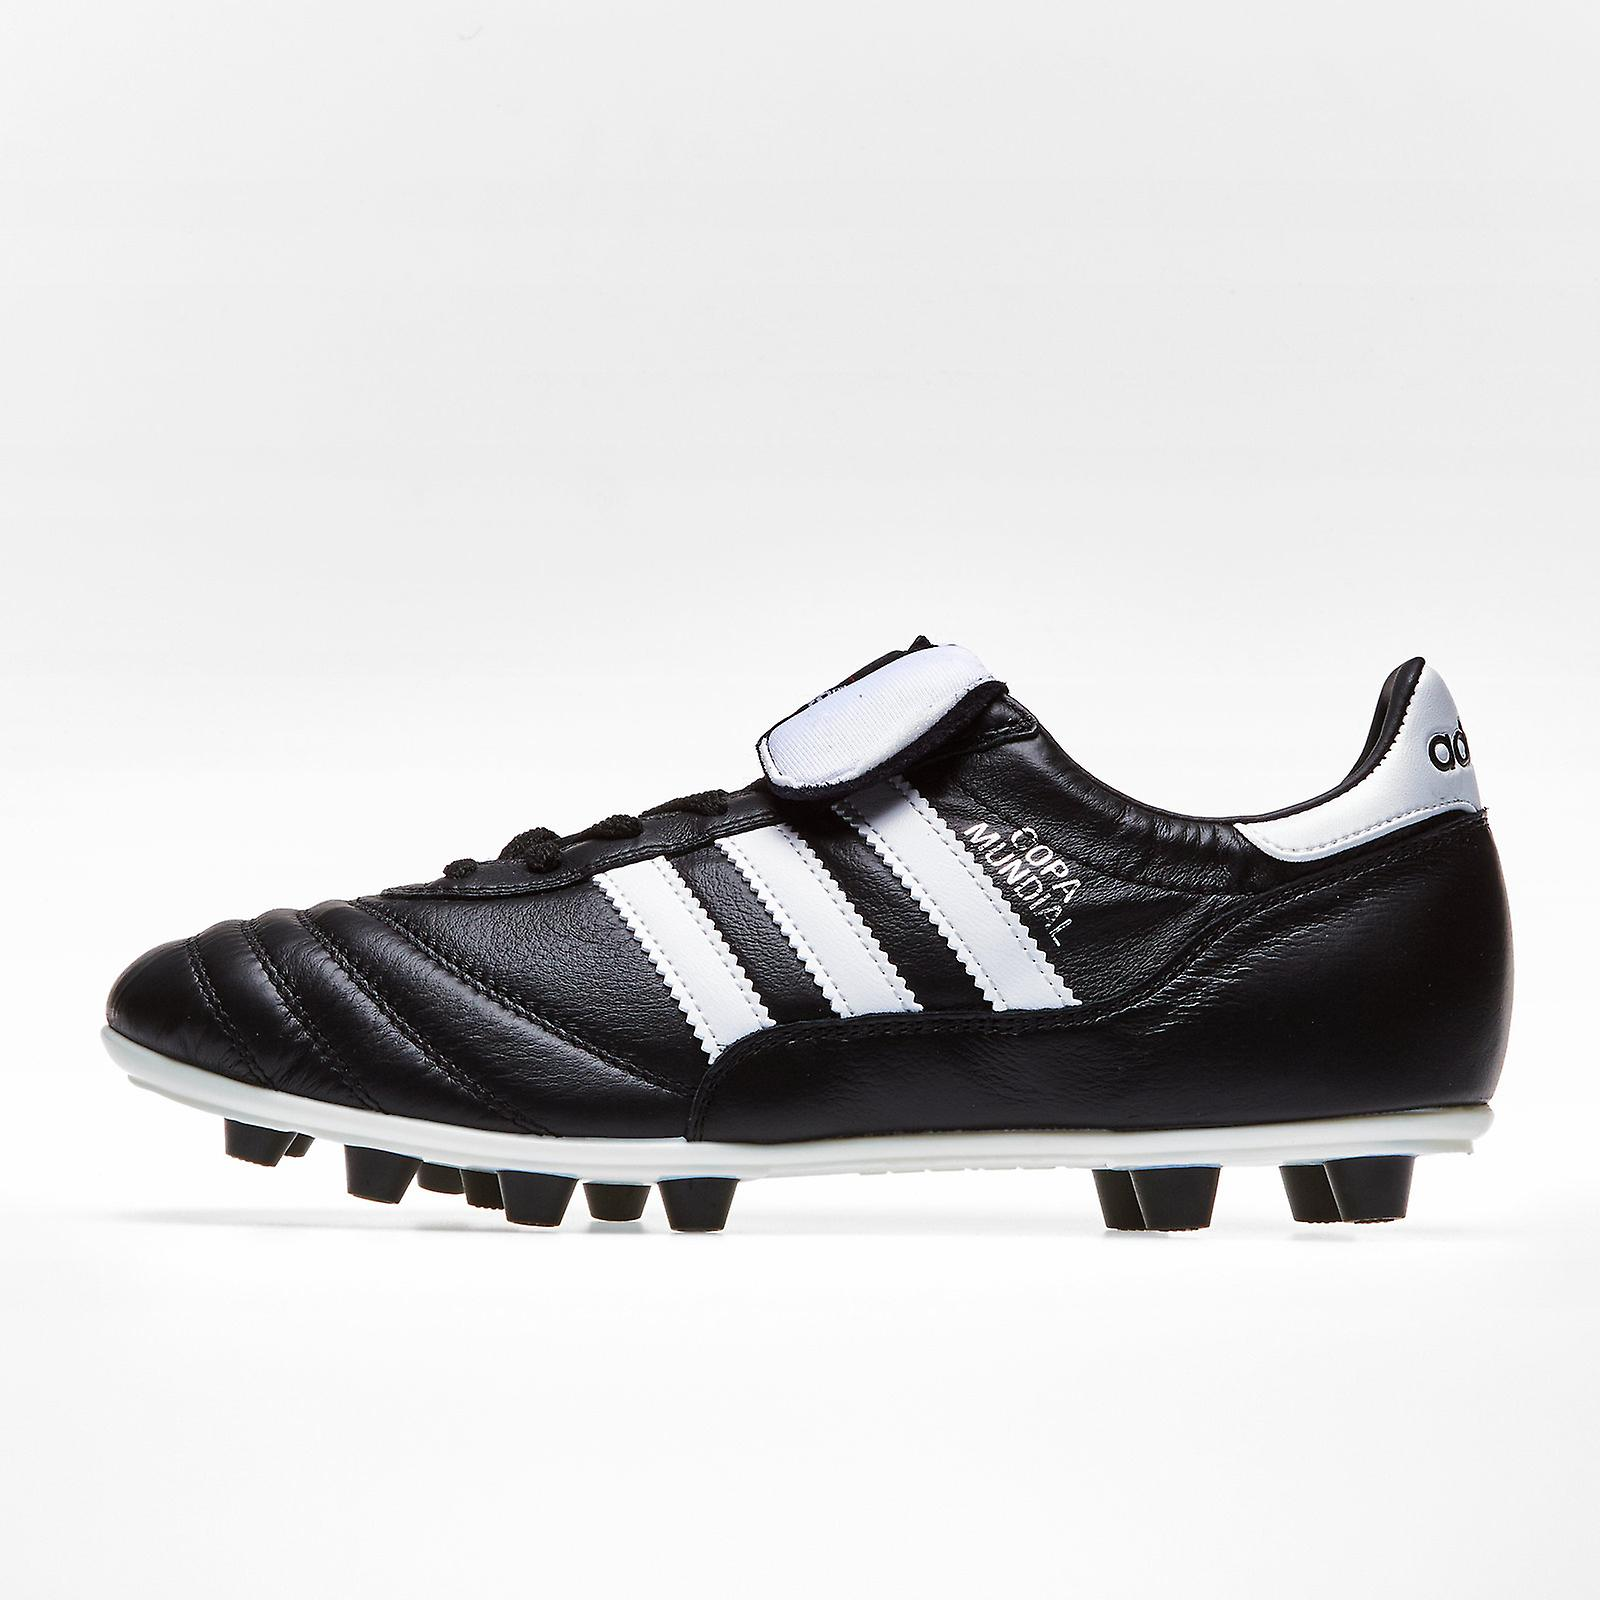 7670c2ee25d Adidas Copa Mundial Moulded FG Football Boots